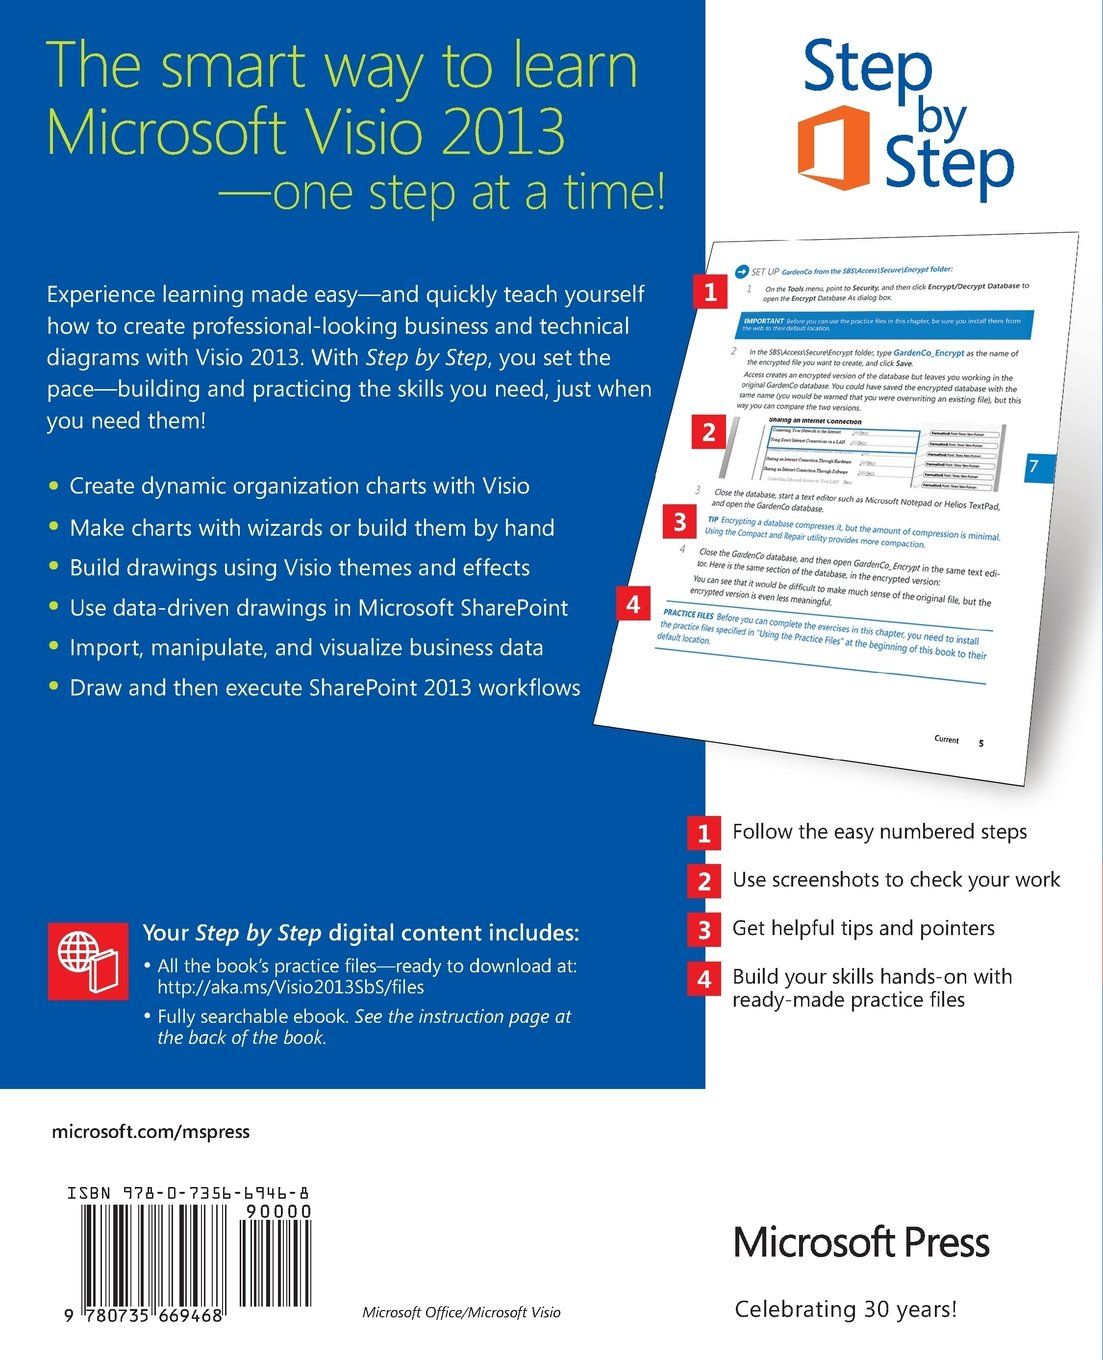 buy microsoft visio 2013 step by step book online at low prices in 71s12j13vxl 0735669465 visio editor free download 96 visio editor free download 96 - Visio Editor Download